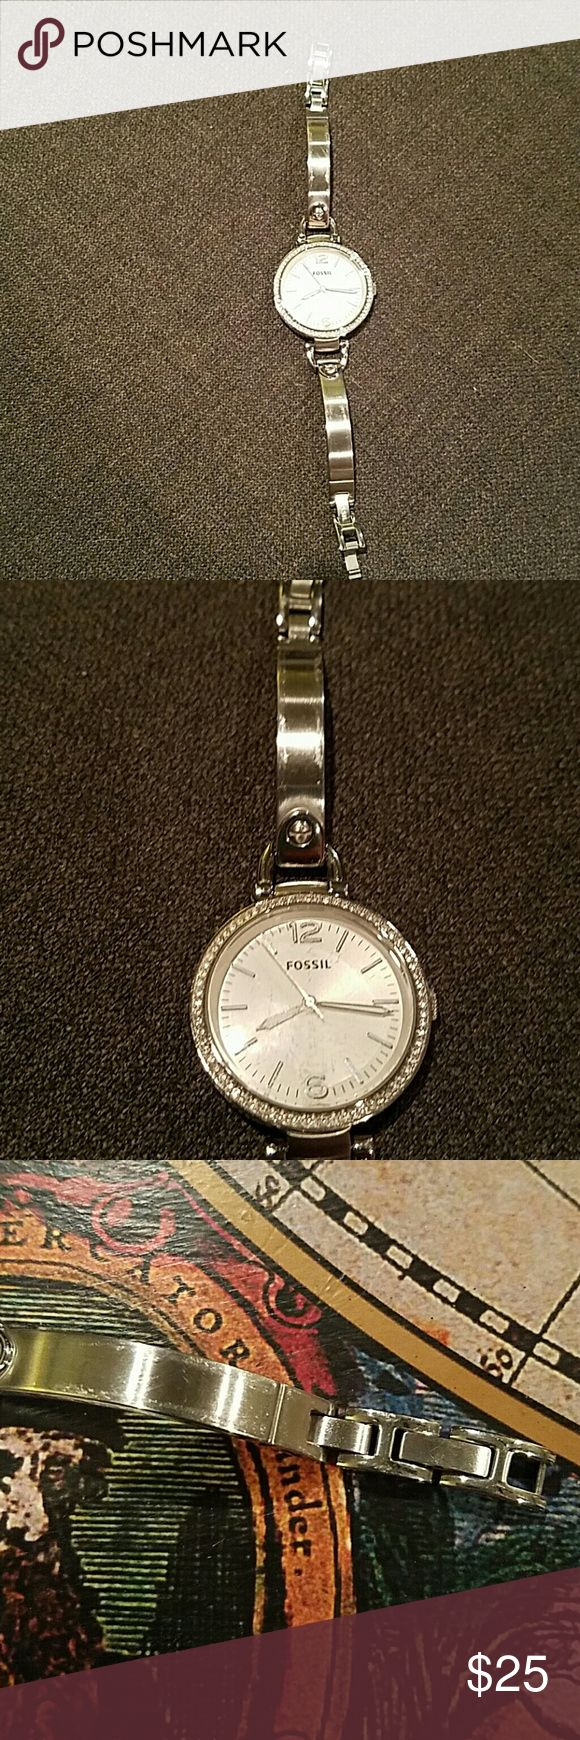 Fossil watch Silver Cute watch. Battery is dead and just needs to be replaced. Links are easy to unhook and remove. No additional links available. Worn every now and then Fossil Accessories Watches